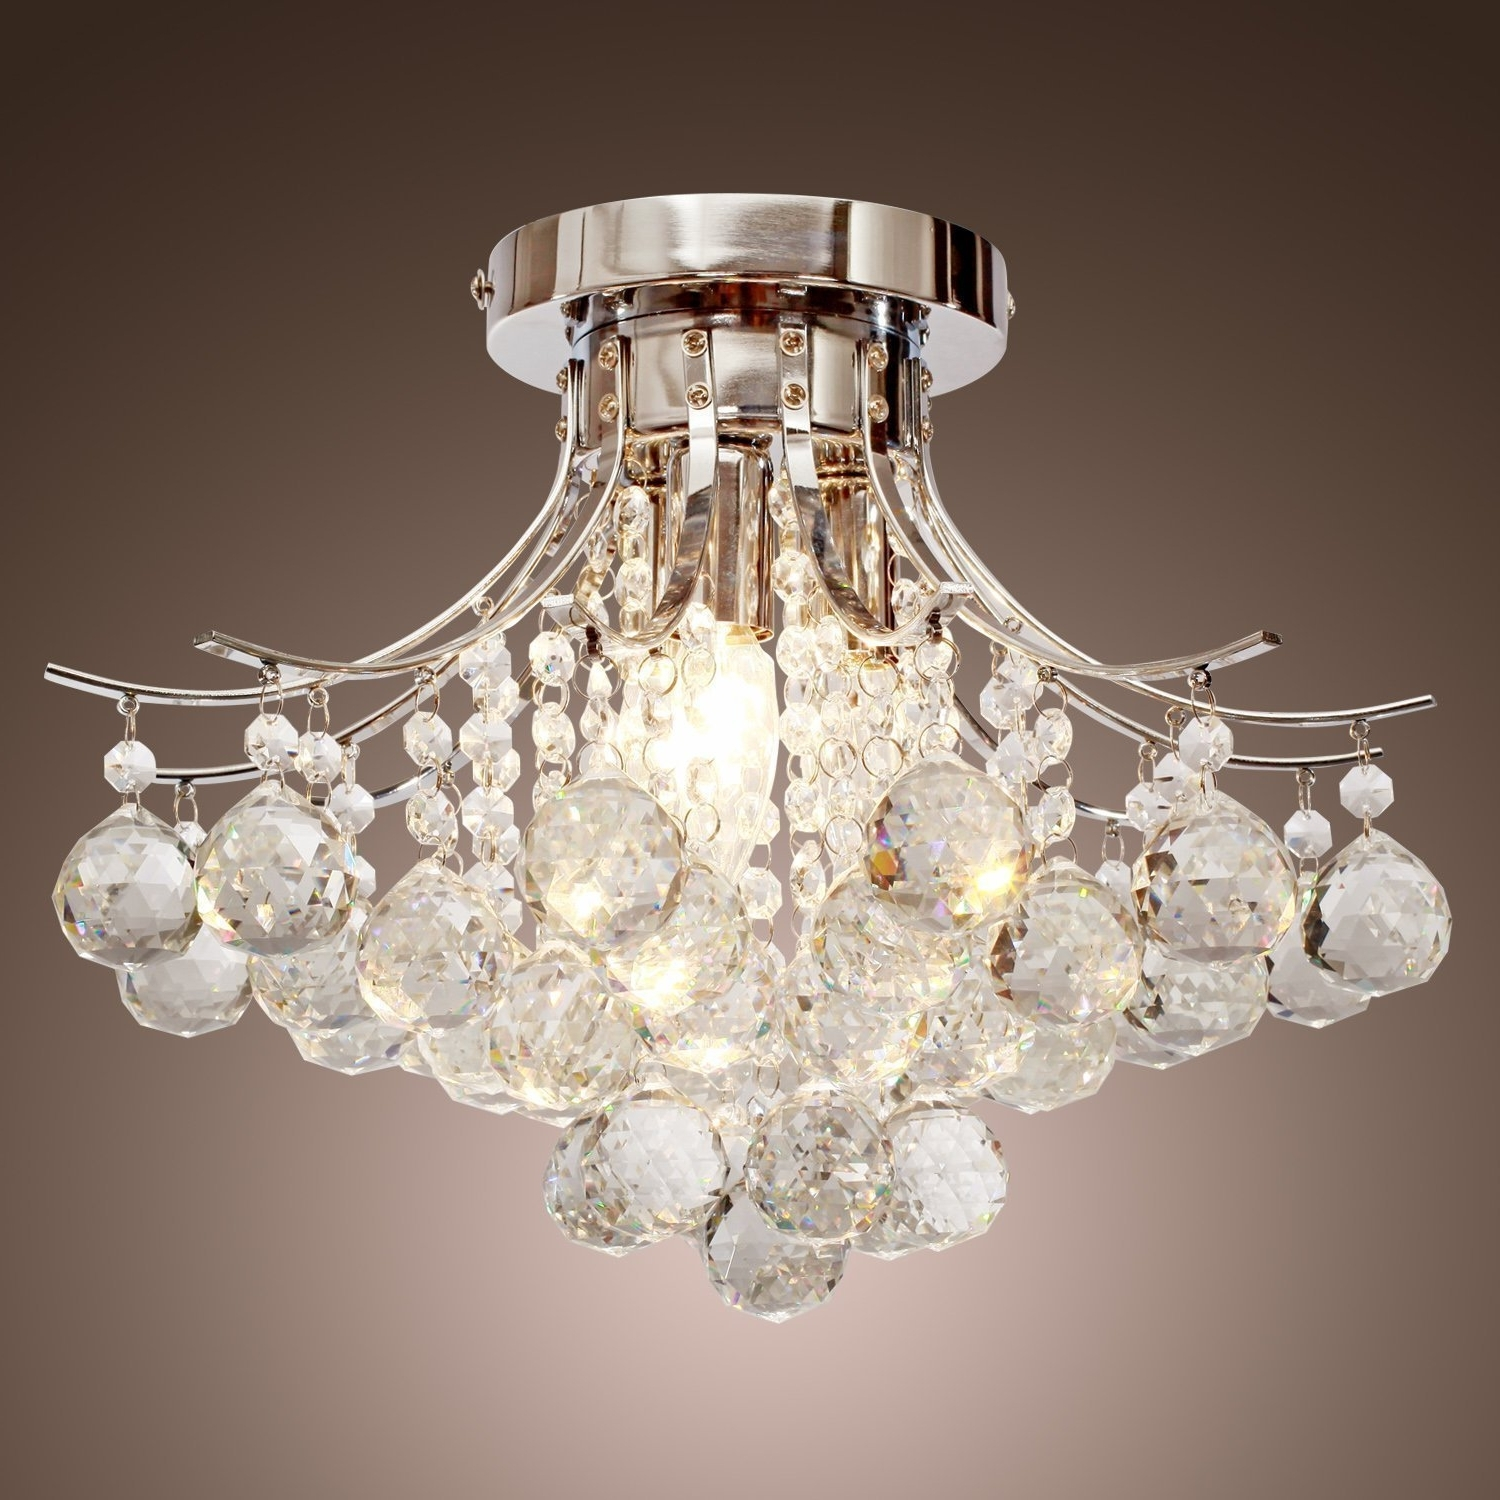 Chandelier Lights Pertaining To Most Recent Locoâ Chrome Finish Crystal Chandelier With 3 Lights, Mini Style (View 8 of 15)